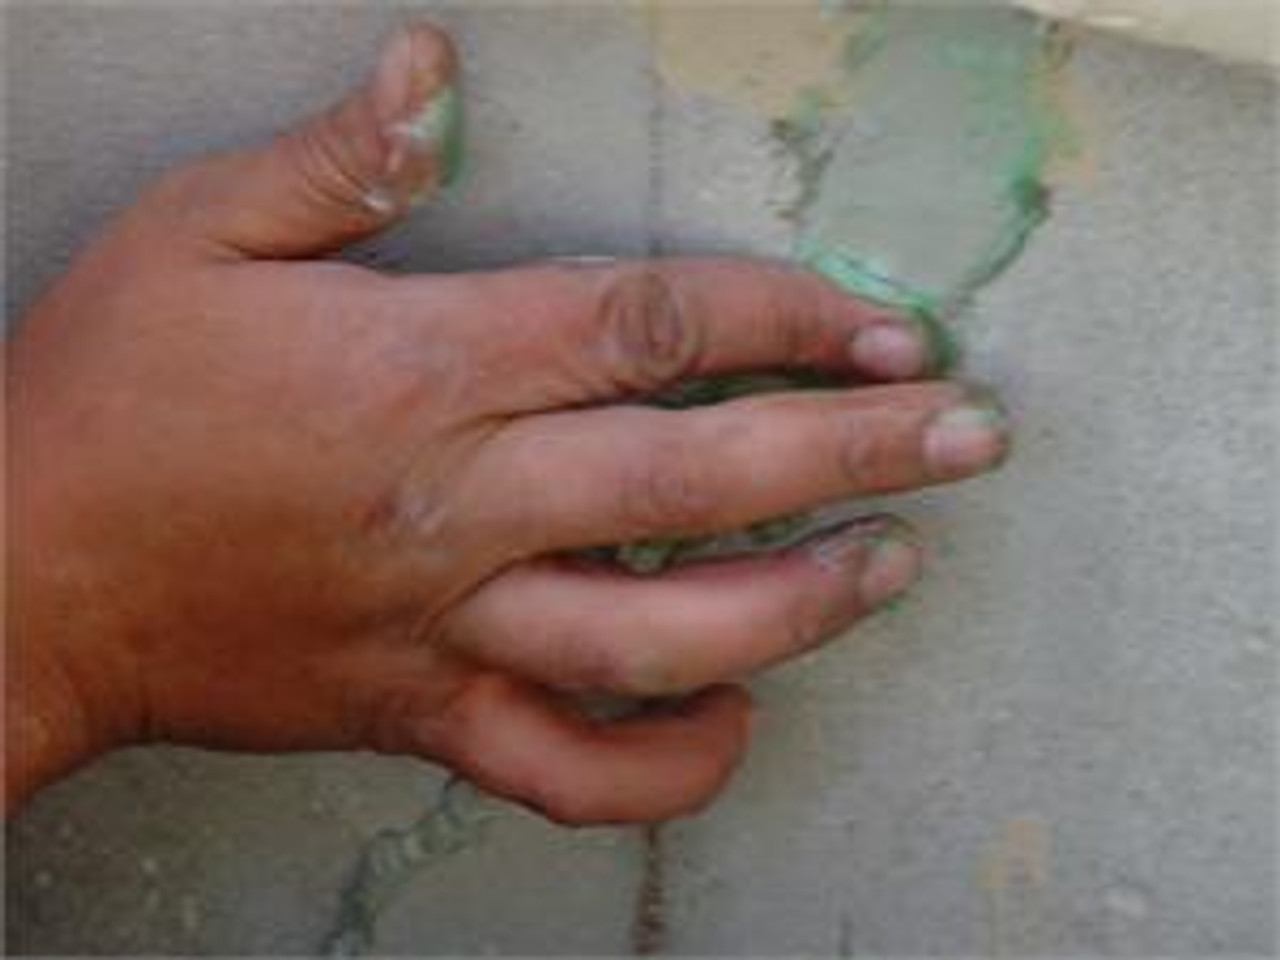 Vertical crack on a foundation wall repaired with 116 Caulk and tooled with soap on finger